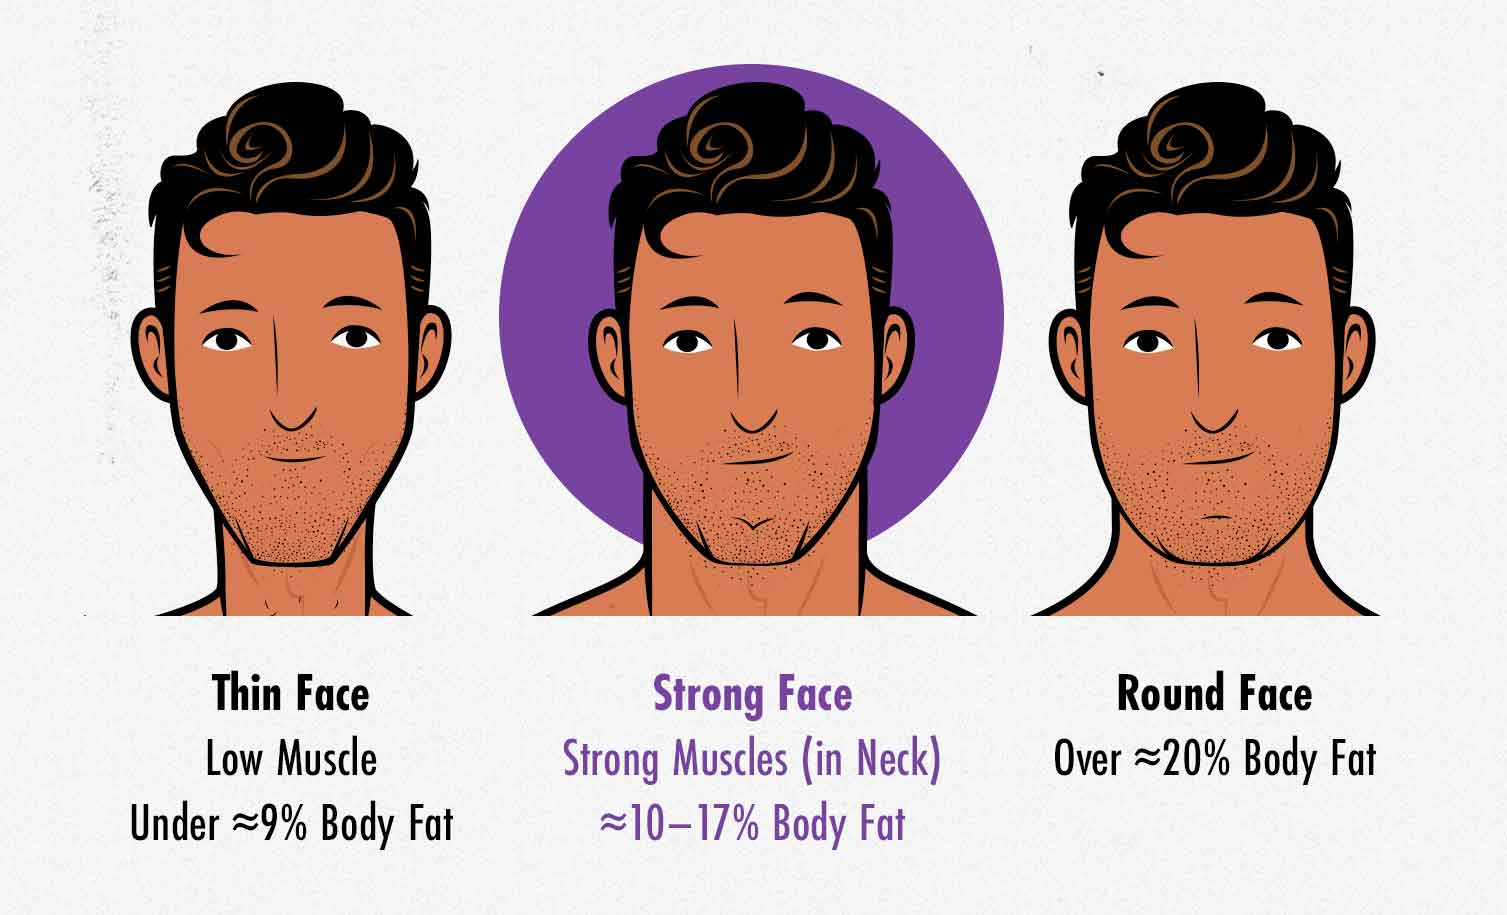 How Fat and Muscle Changes the Appearance of Your Face